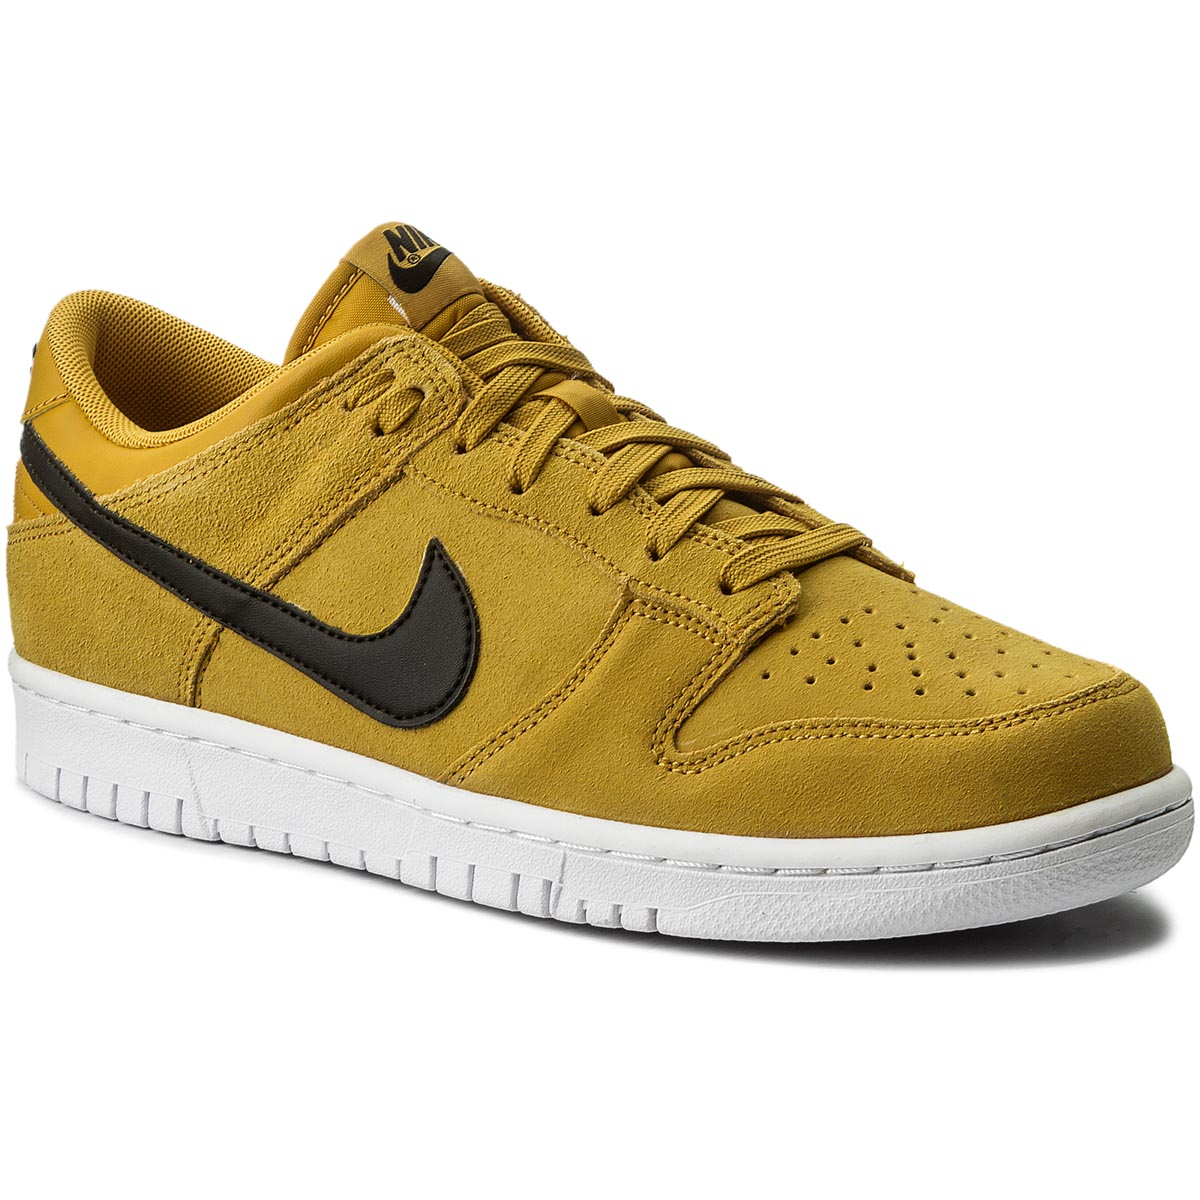 Pantofi NIKE - Dunk Low 904234 700 Mineral Yellow/Black/White